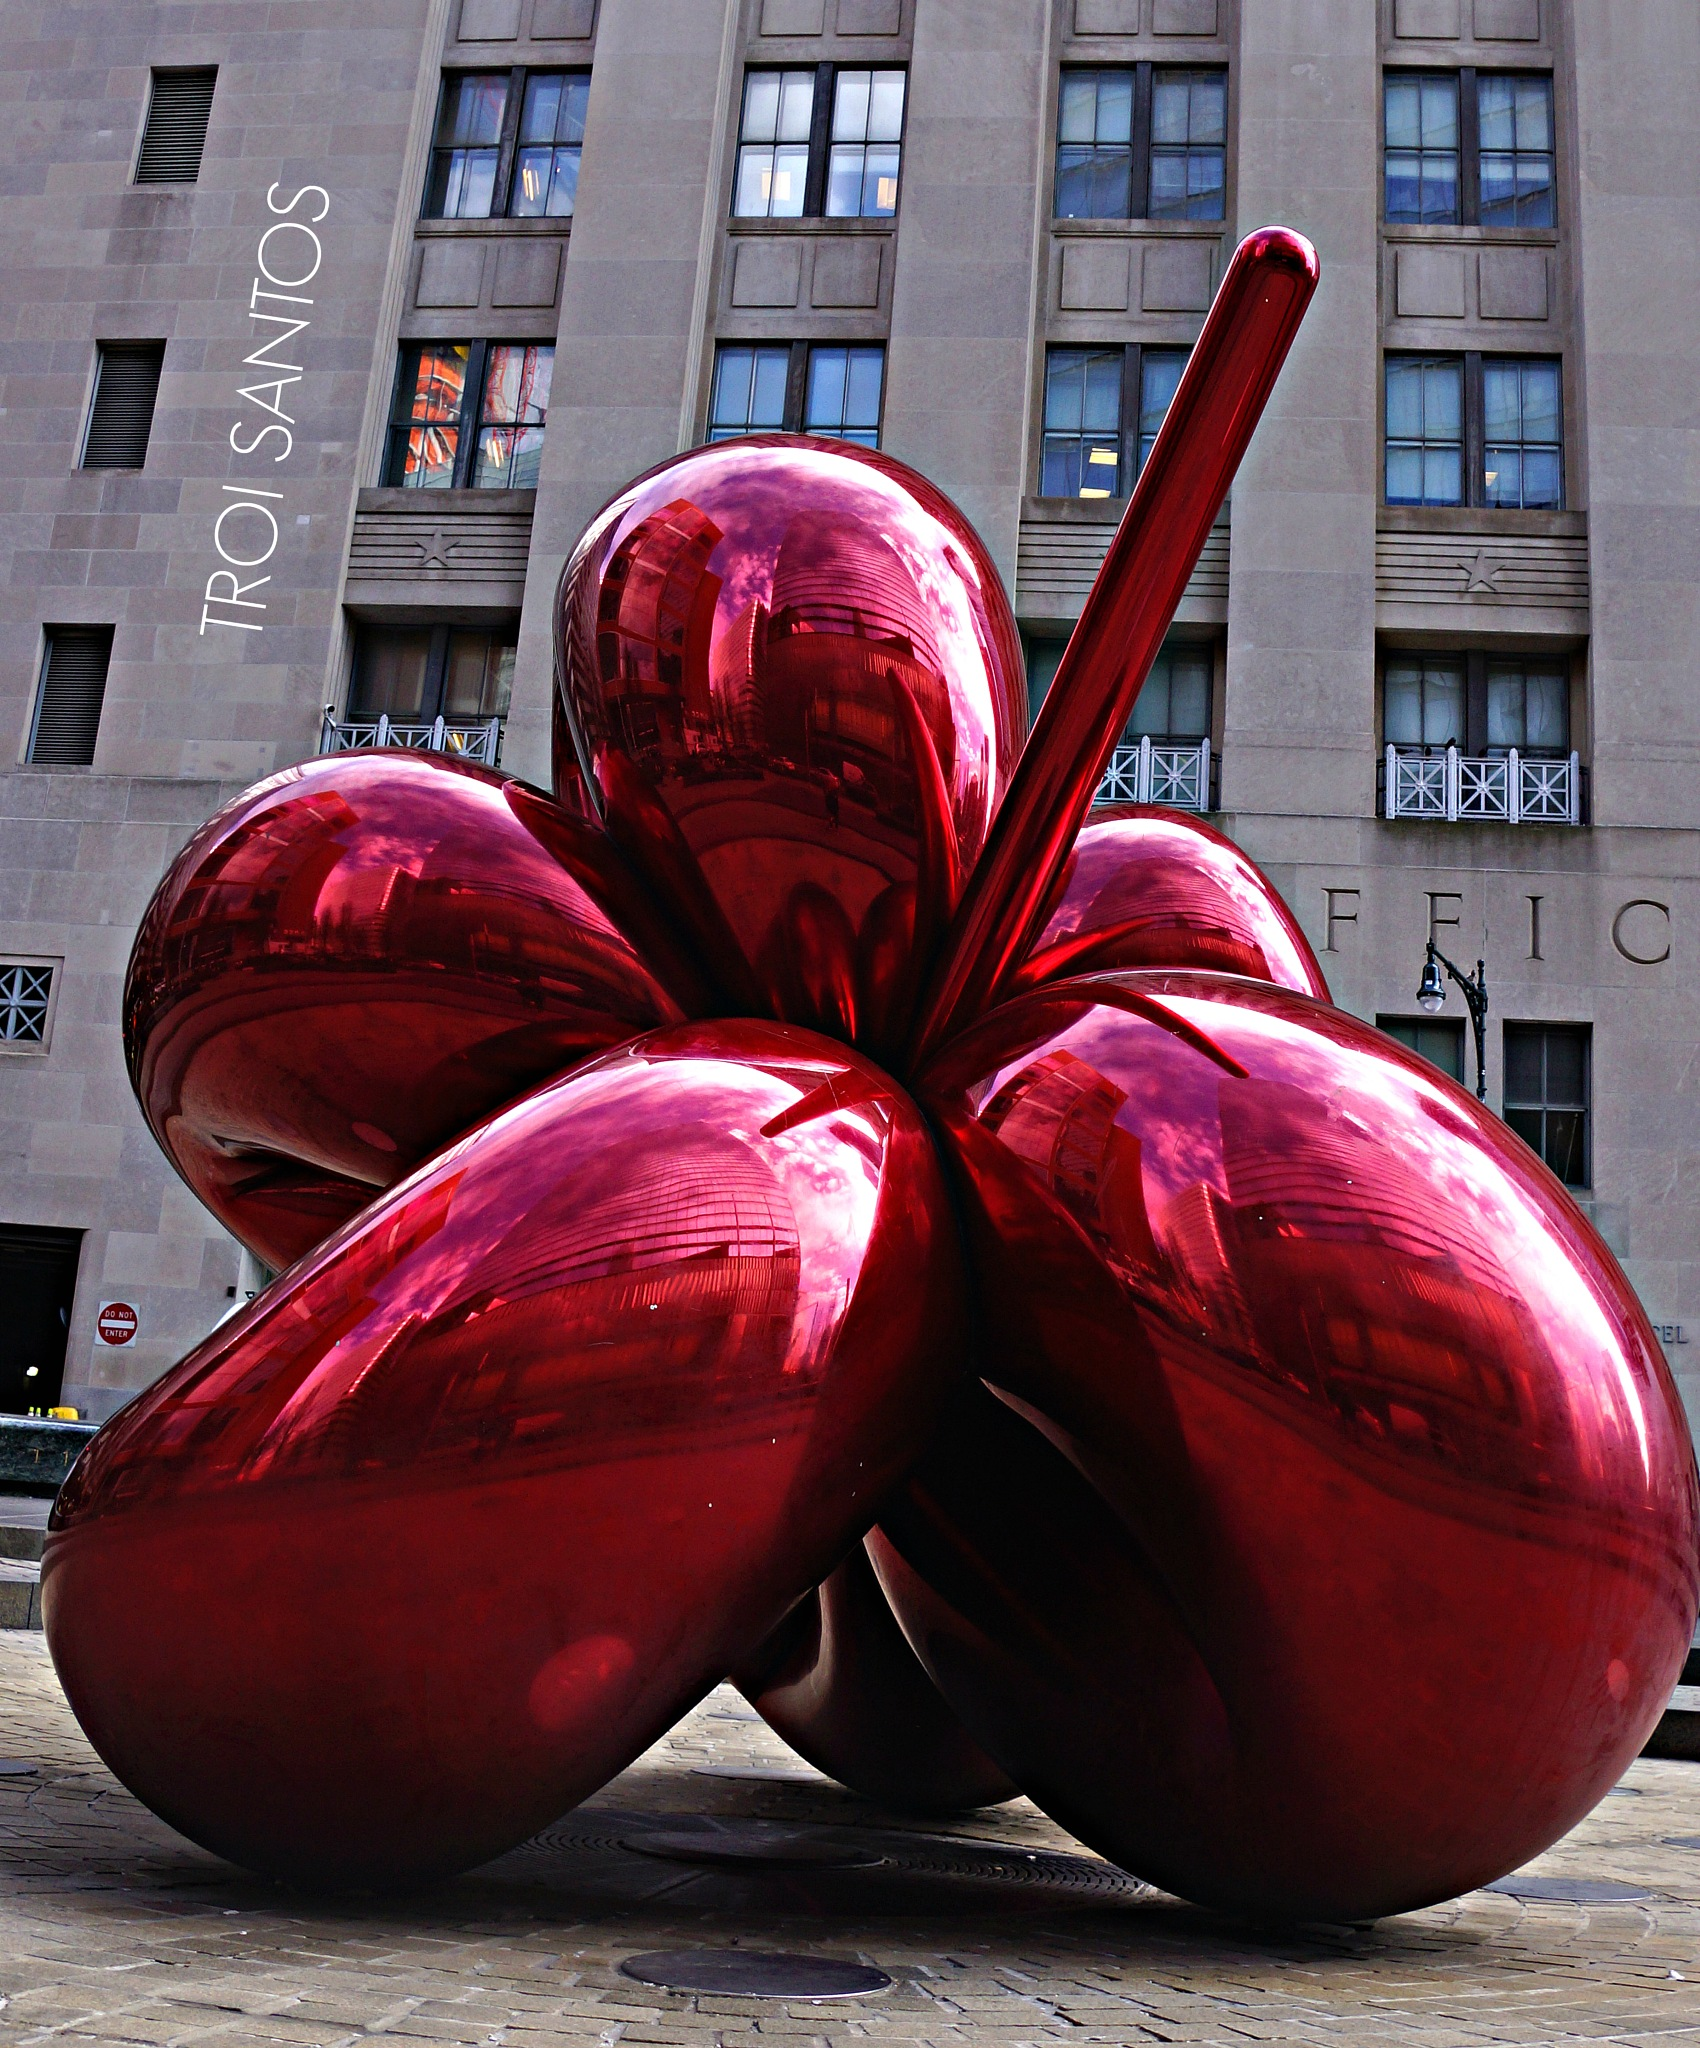 JEFF KOONS BALLOON by Troi Santos